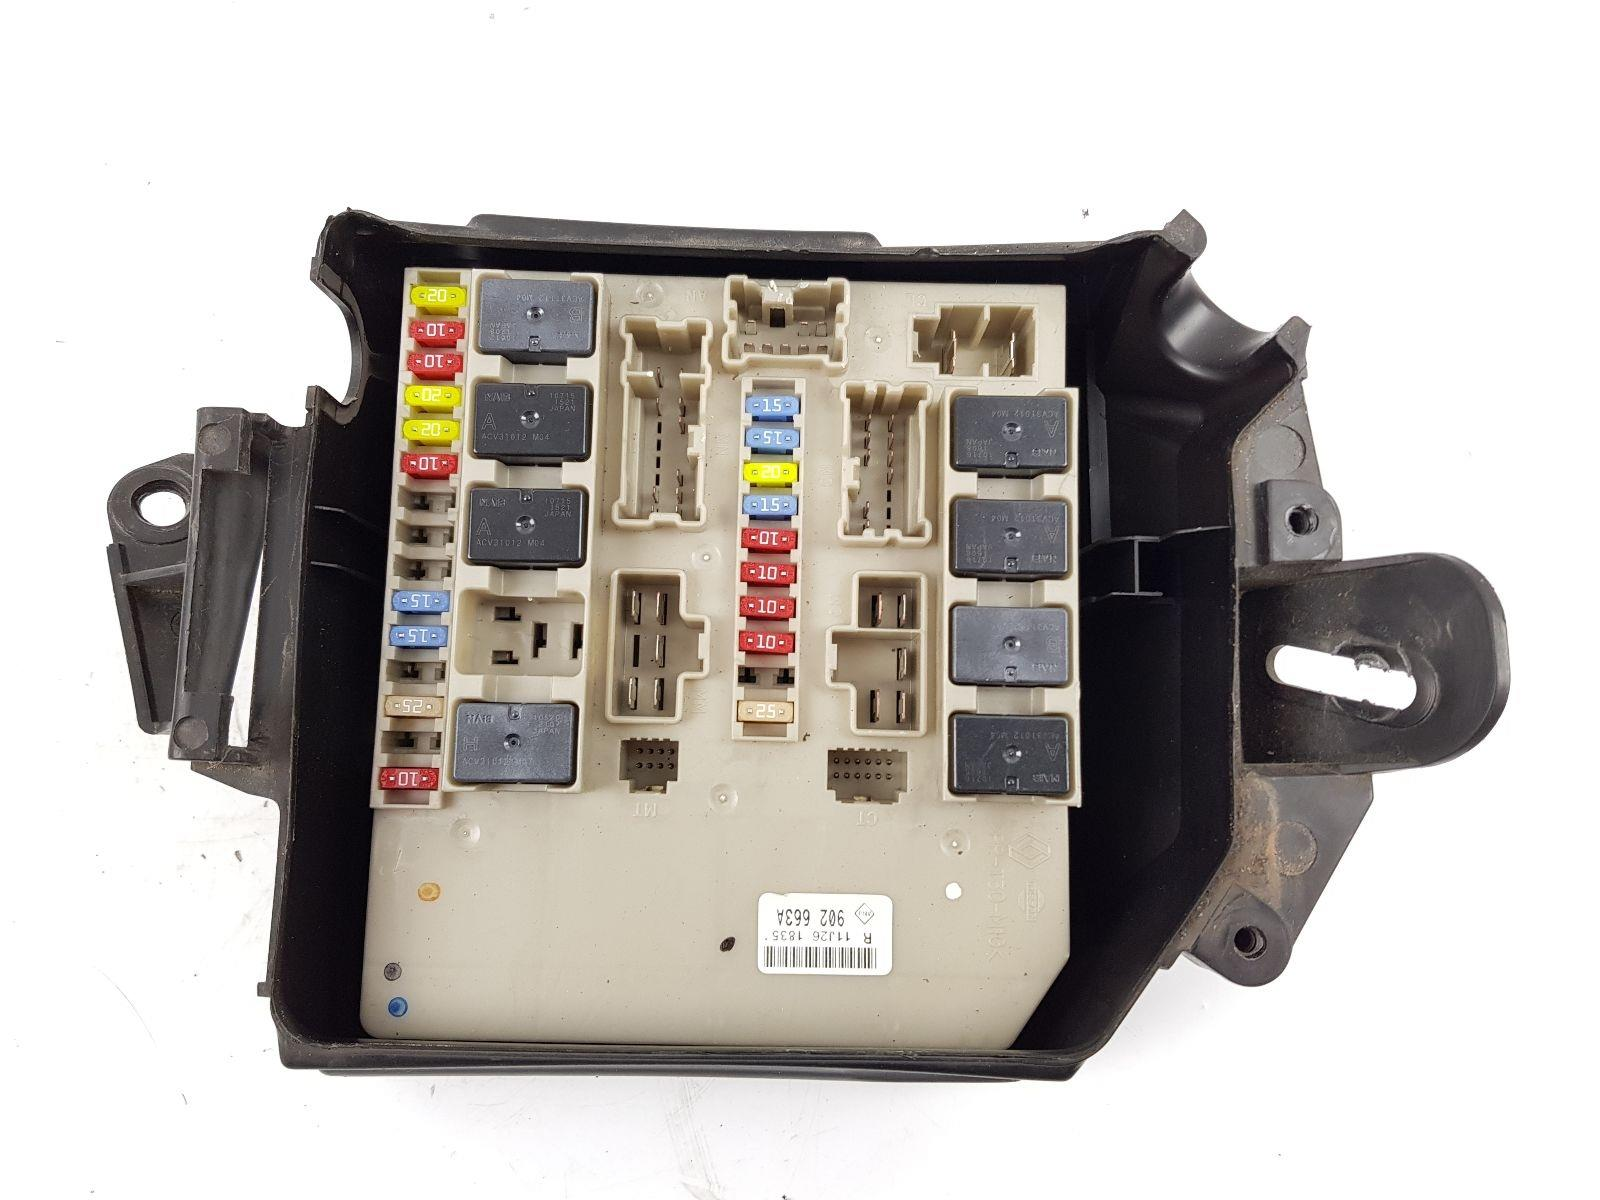 Renault Clio 2009 To 2012 Fuse Box Diesel Manual For Sale From On A